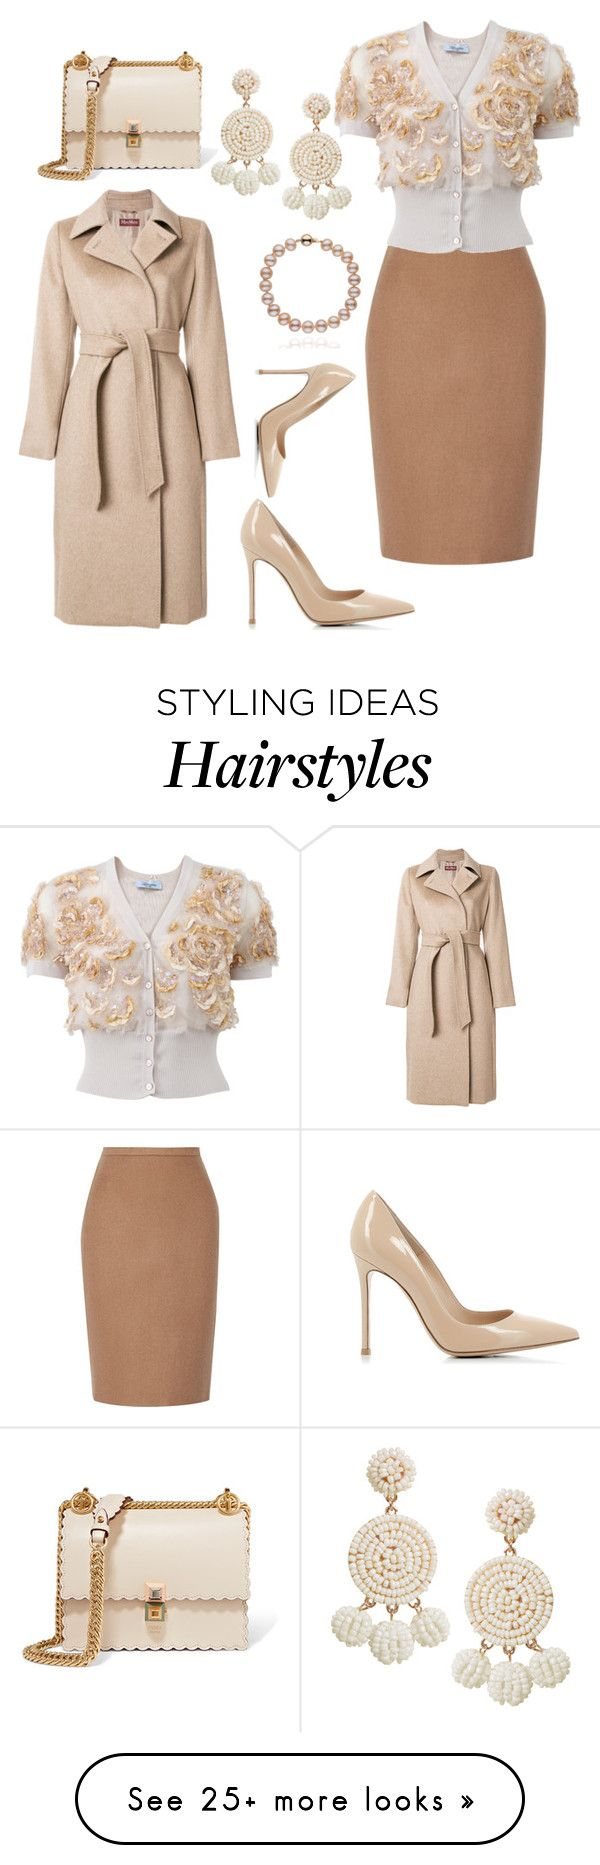 """""""Nudes"""" by styledbytjohnson on Polyvore featuring MaxMara, Blumarine, Gianvito Rossi, Fendi and Humble Chic"""